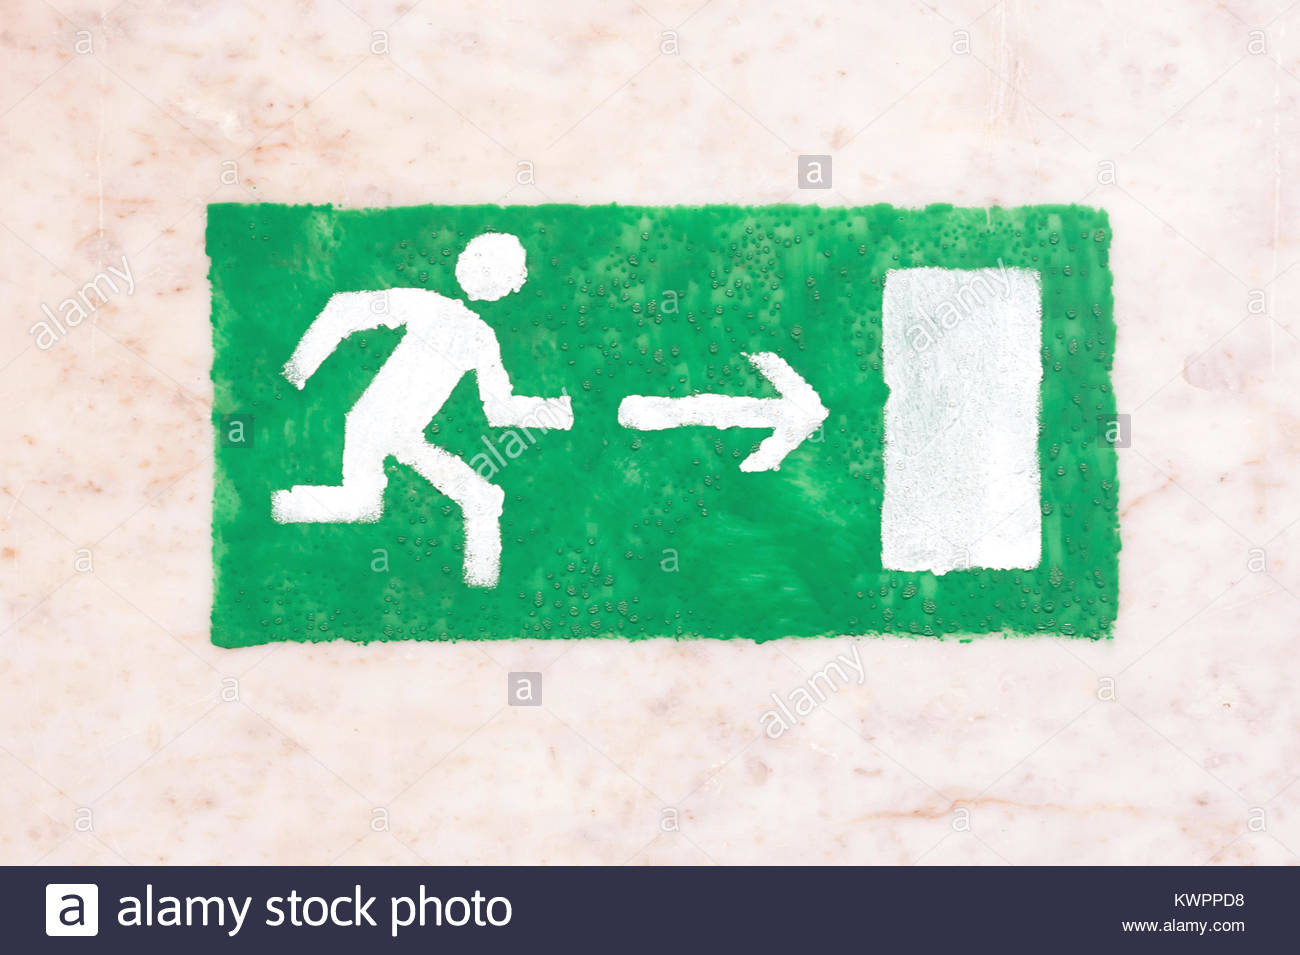 Emergency exit sign green on a light background visitor safety 1300x955